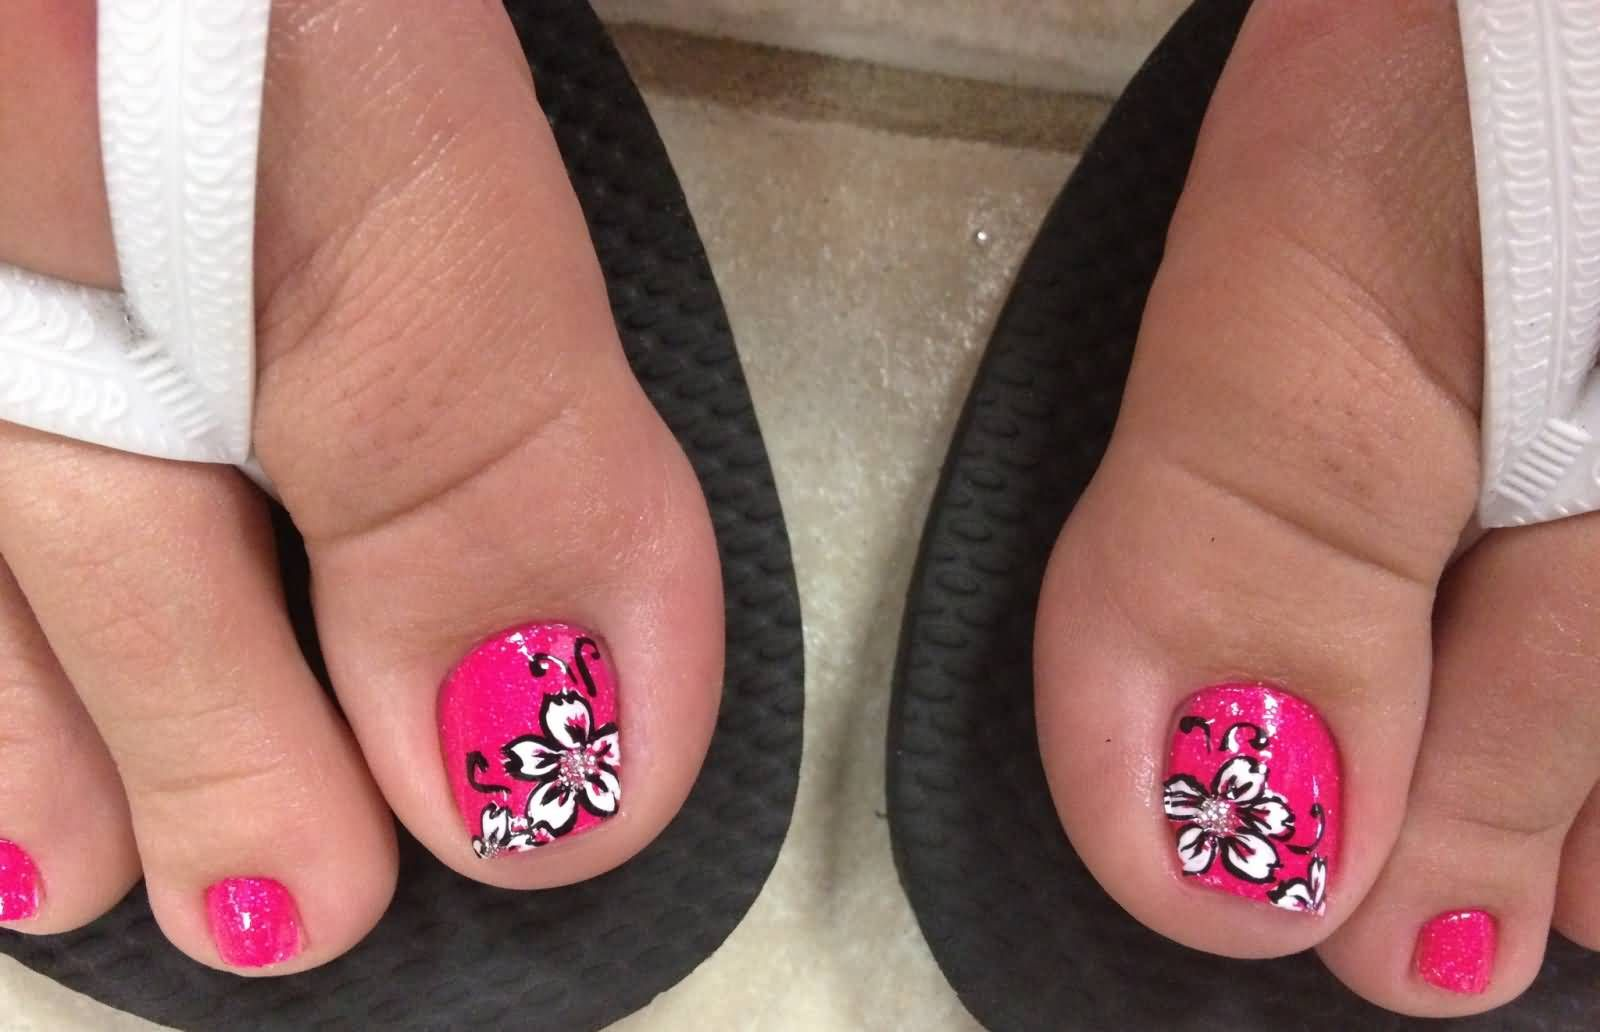 Pink Toe Nails With White Flower Nail Design | Stuff to Try ...